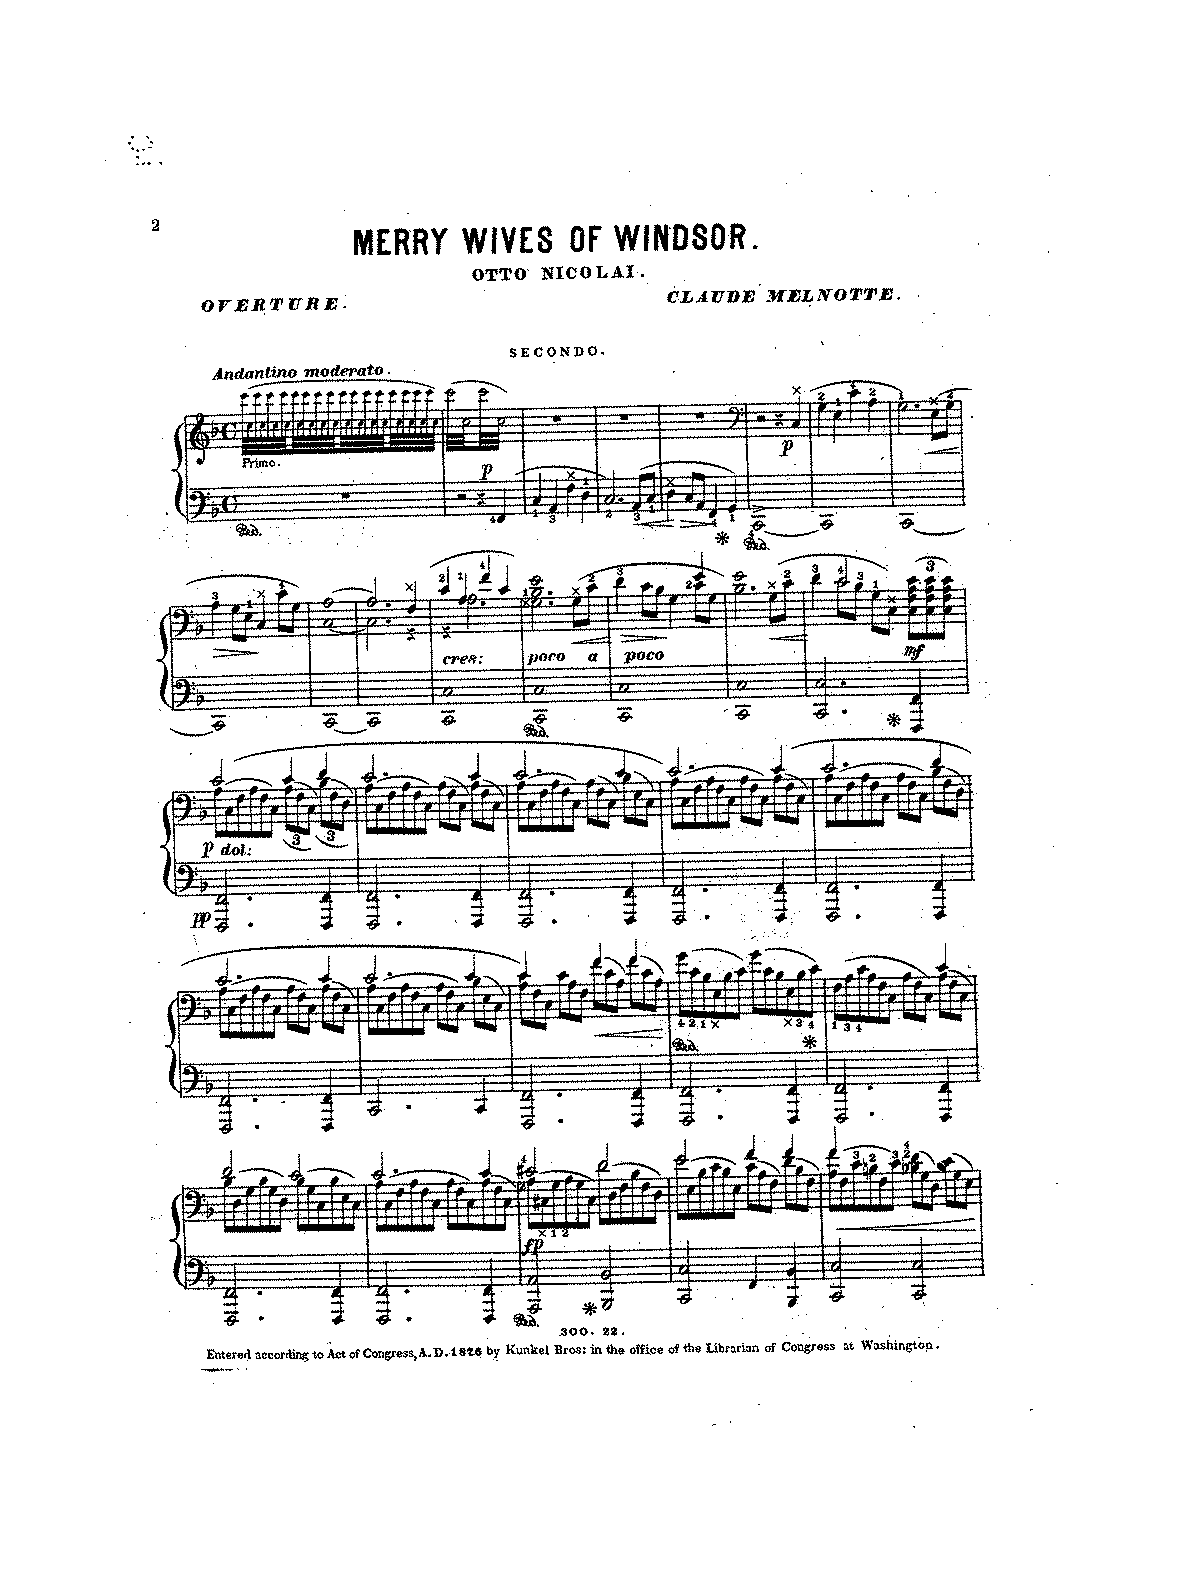 Melnotte Merry wives of Windsor overture piano 4 hands.pdf